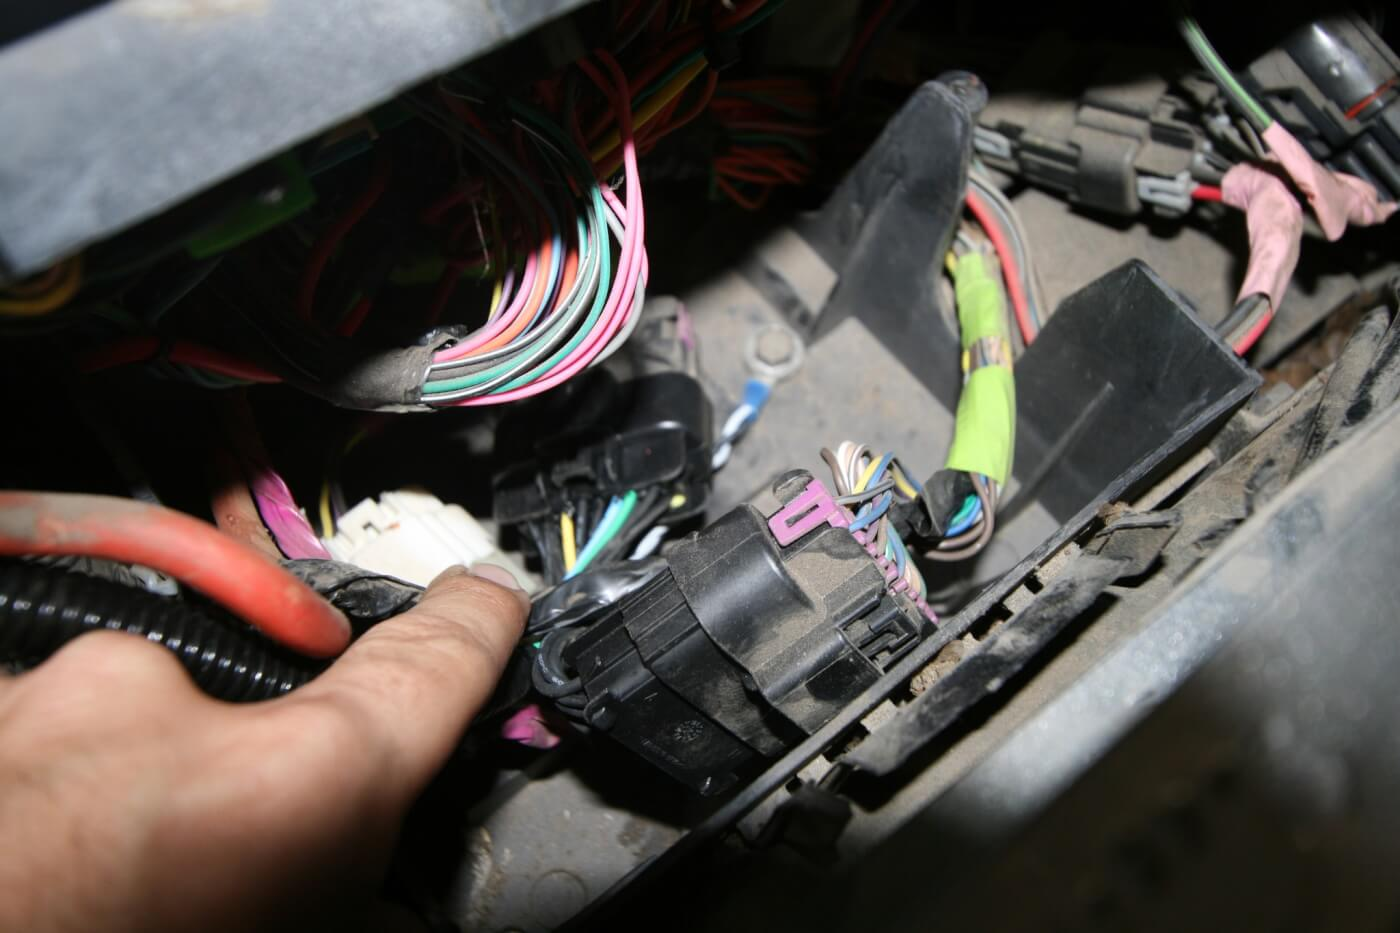 DW 1601 GMBANKS 10 speedbrake installation on a duramax 1974 Chevy Truck Fuse Box Diagram at webbmarketing.co